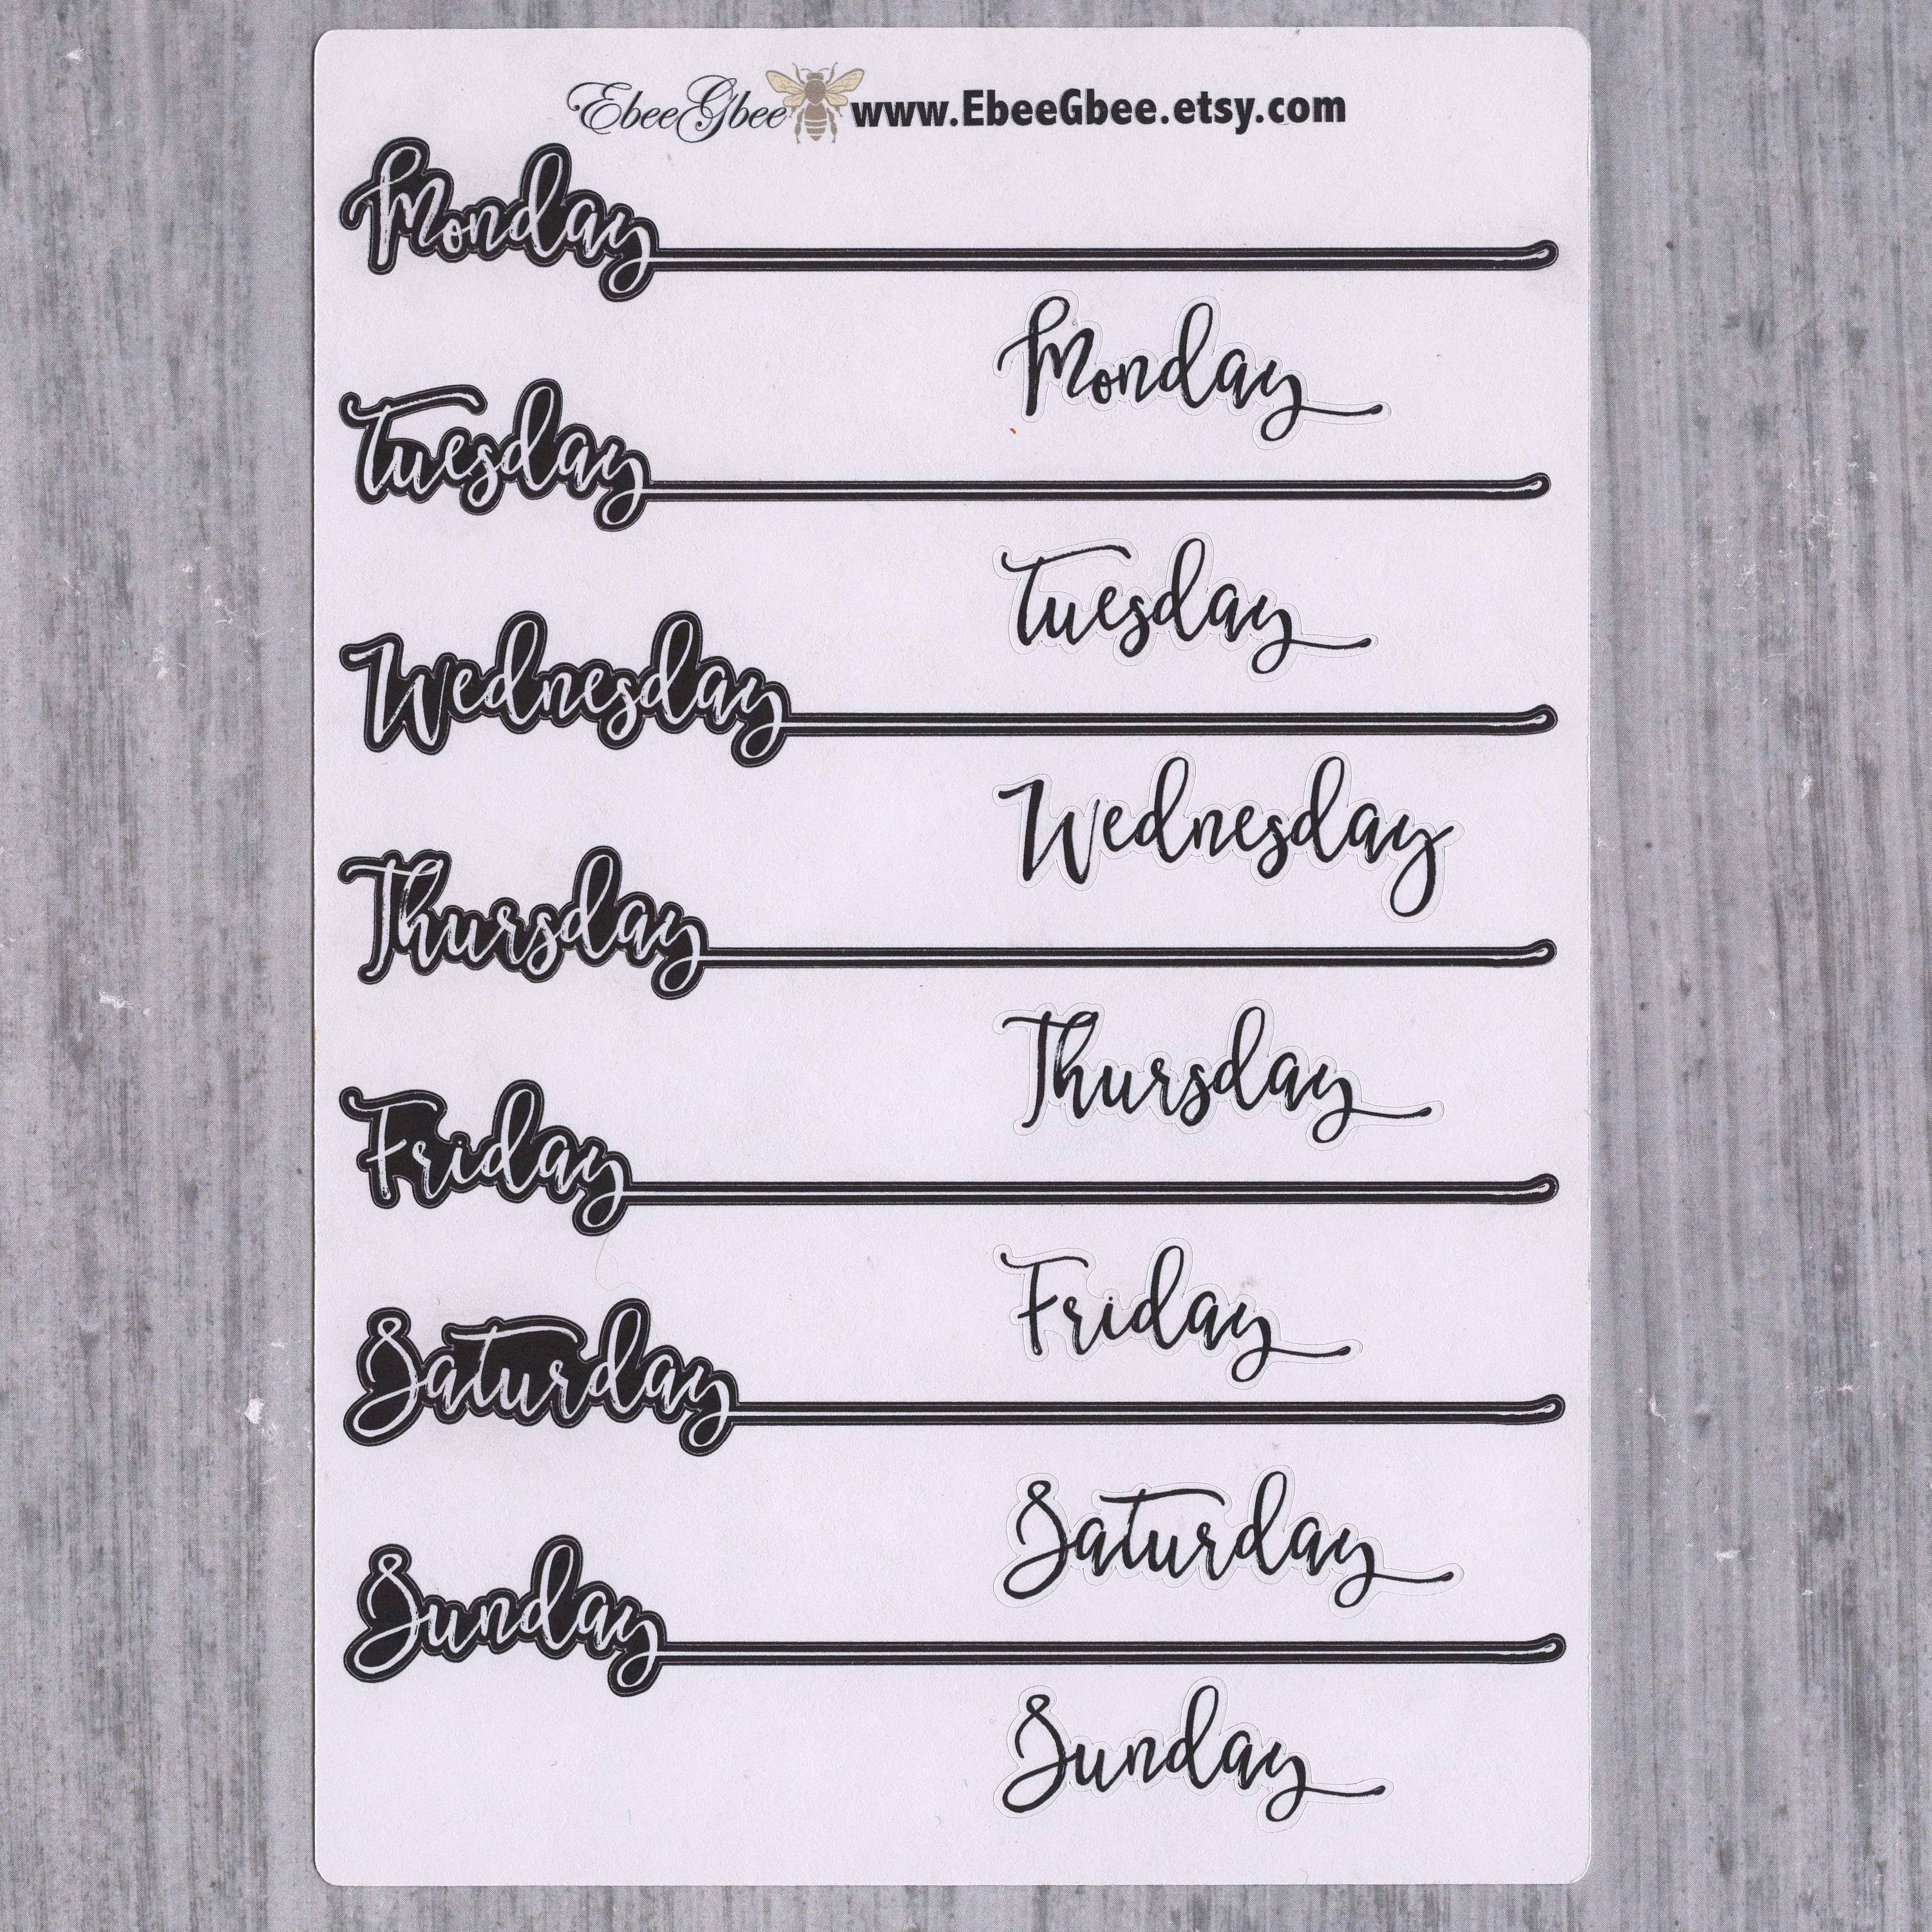 B&W WEEKDAY HEADERS  Planner Stickers | Hand Drawn Bullet Journal (BuJo) Style